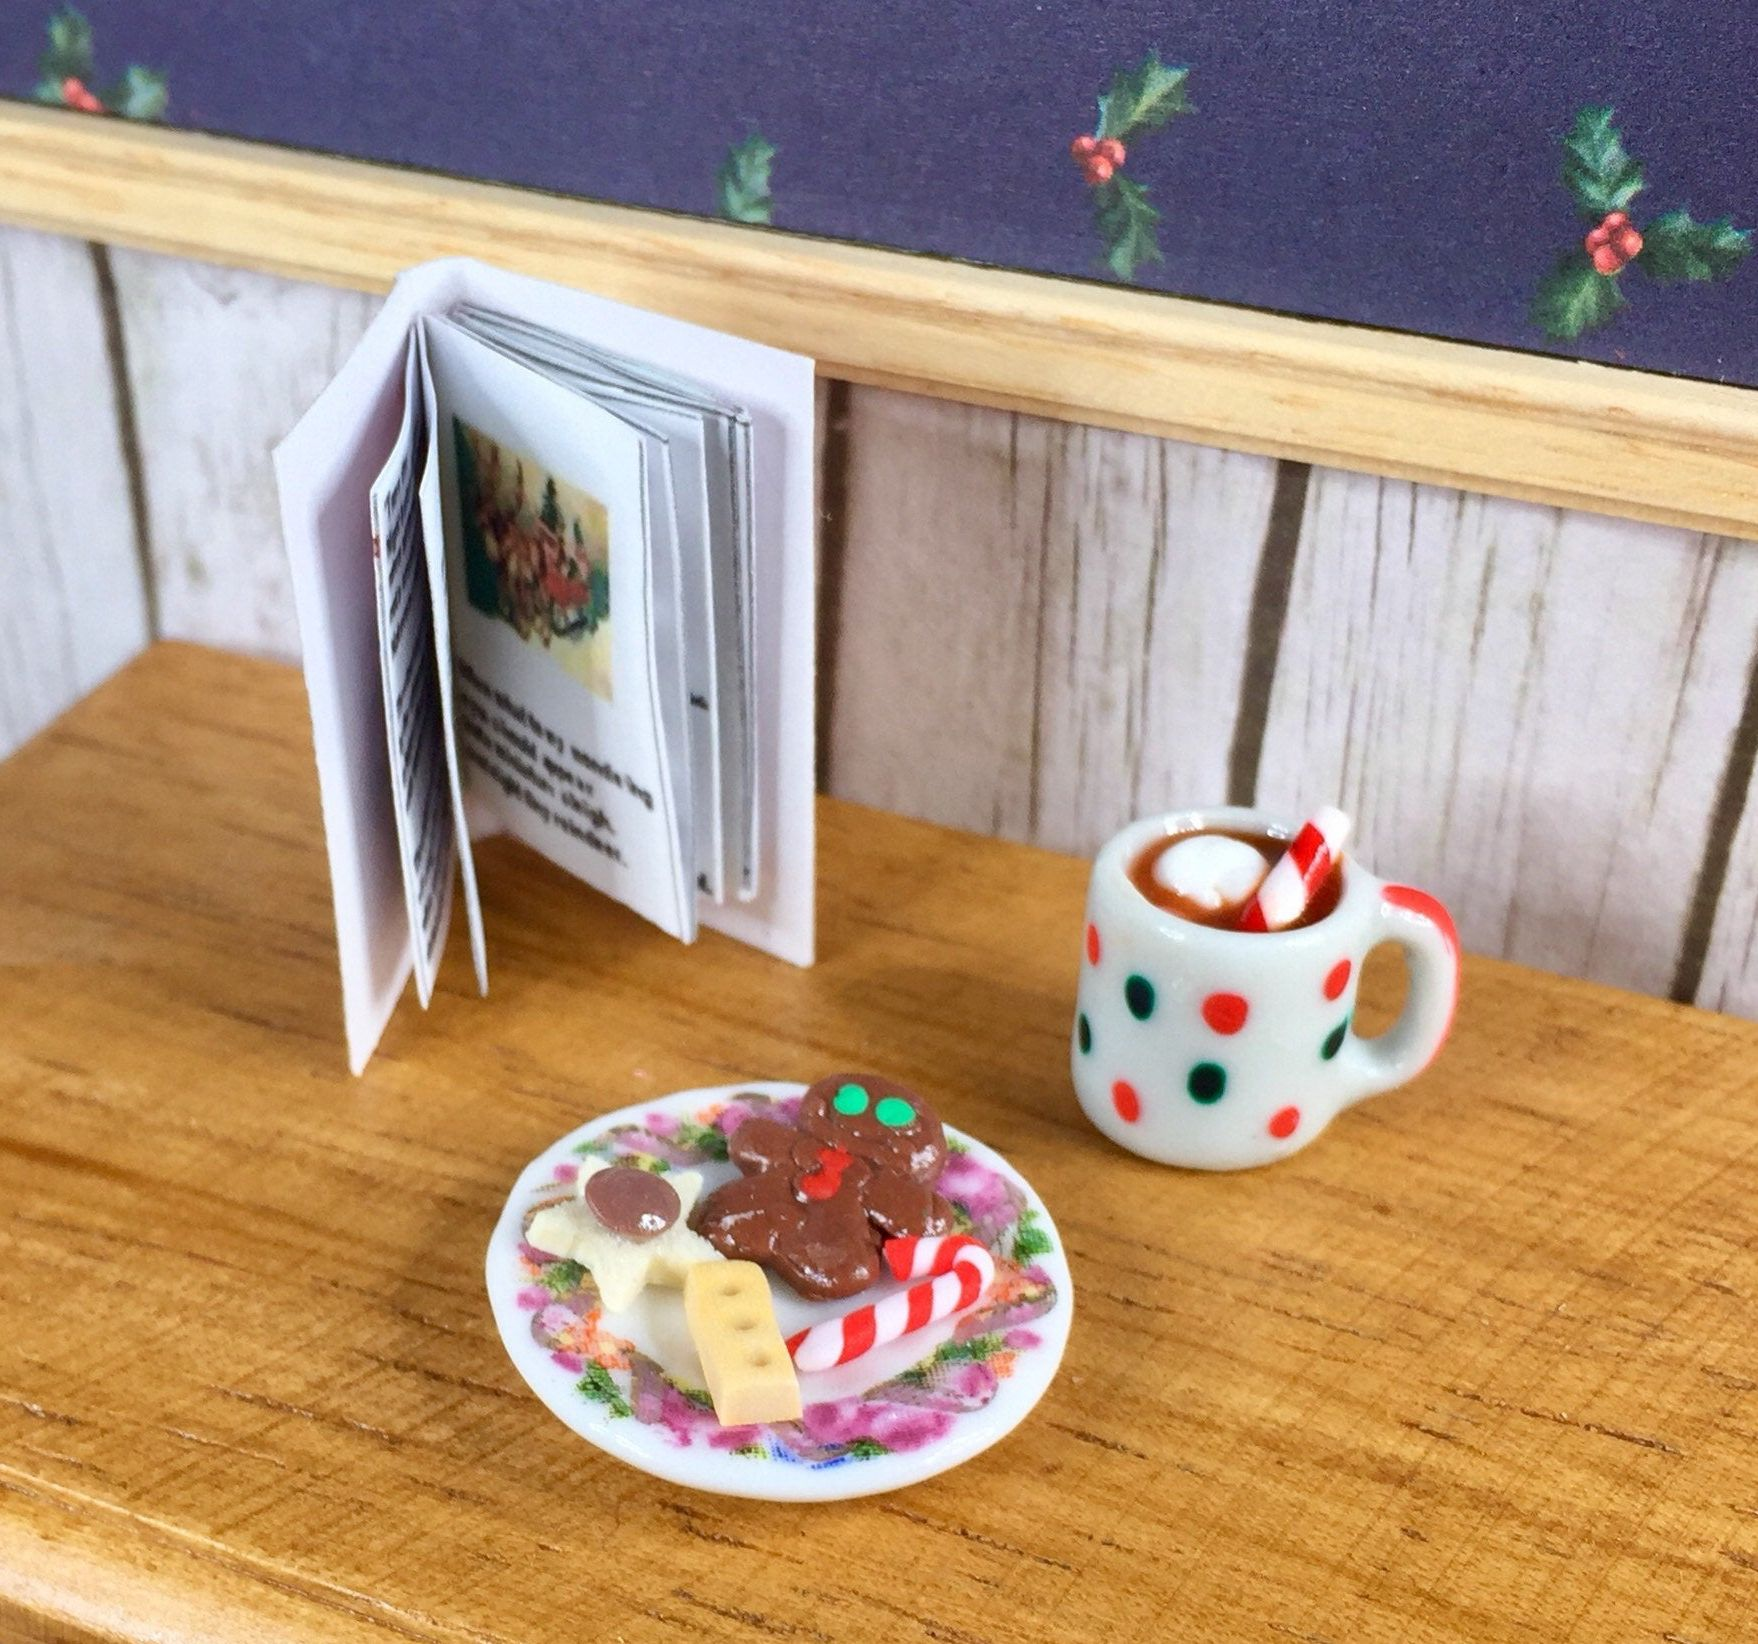 Cup of Hot Cocoa Dollhouse Miniature Food 1:12 Scale Kitchen